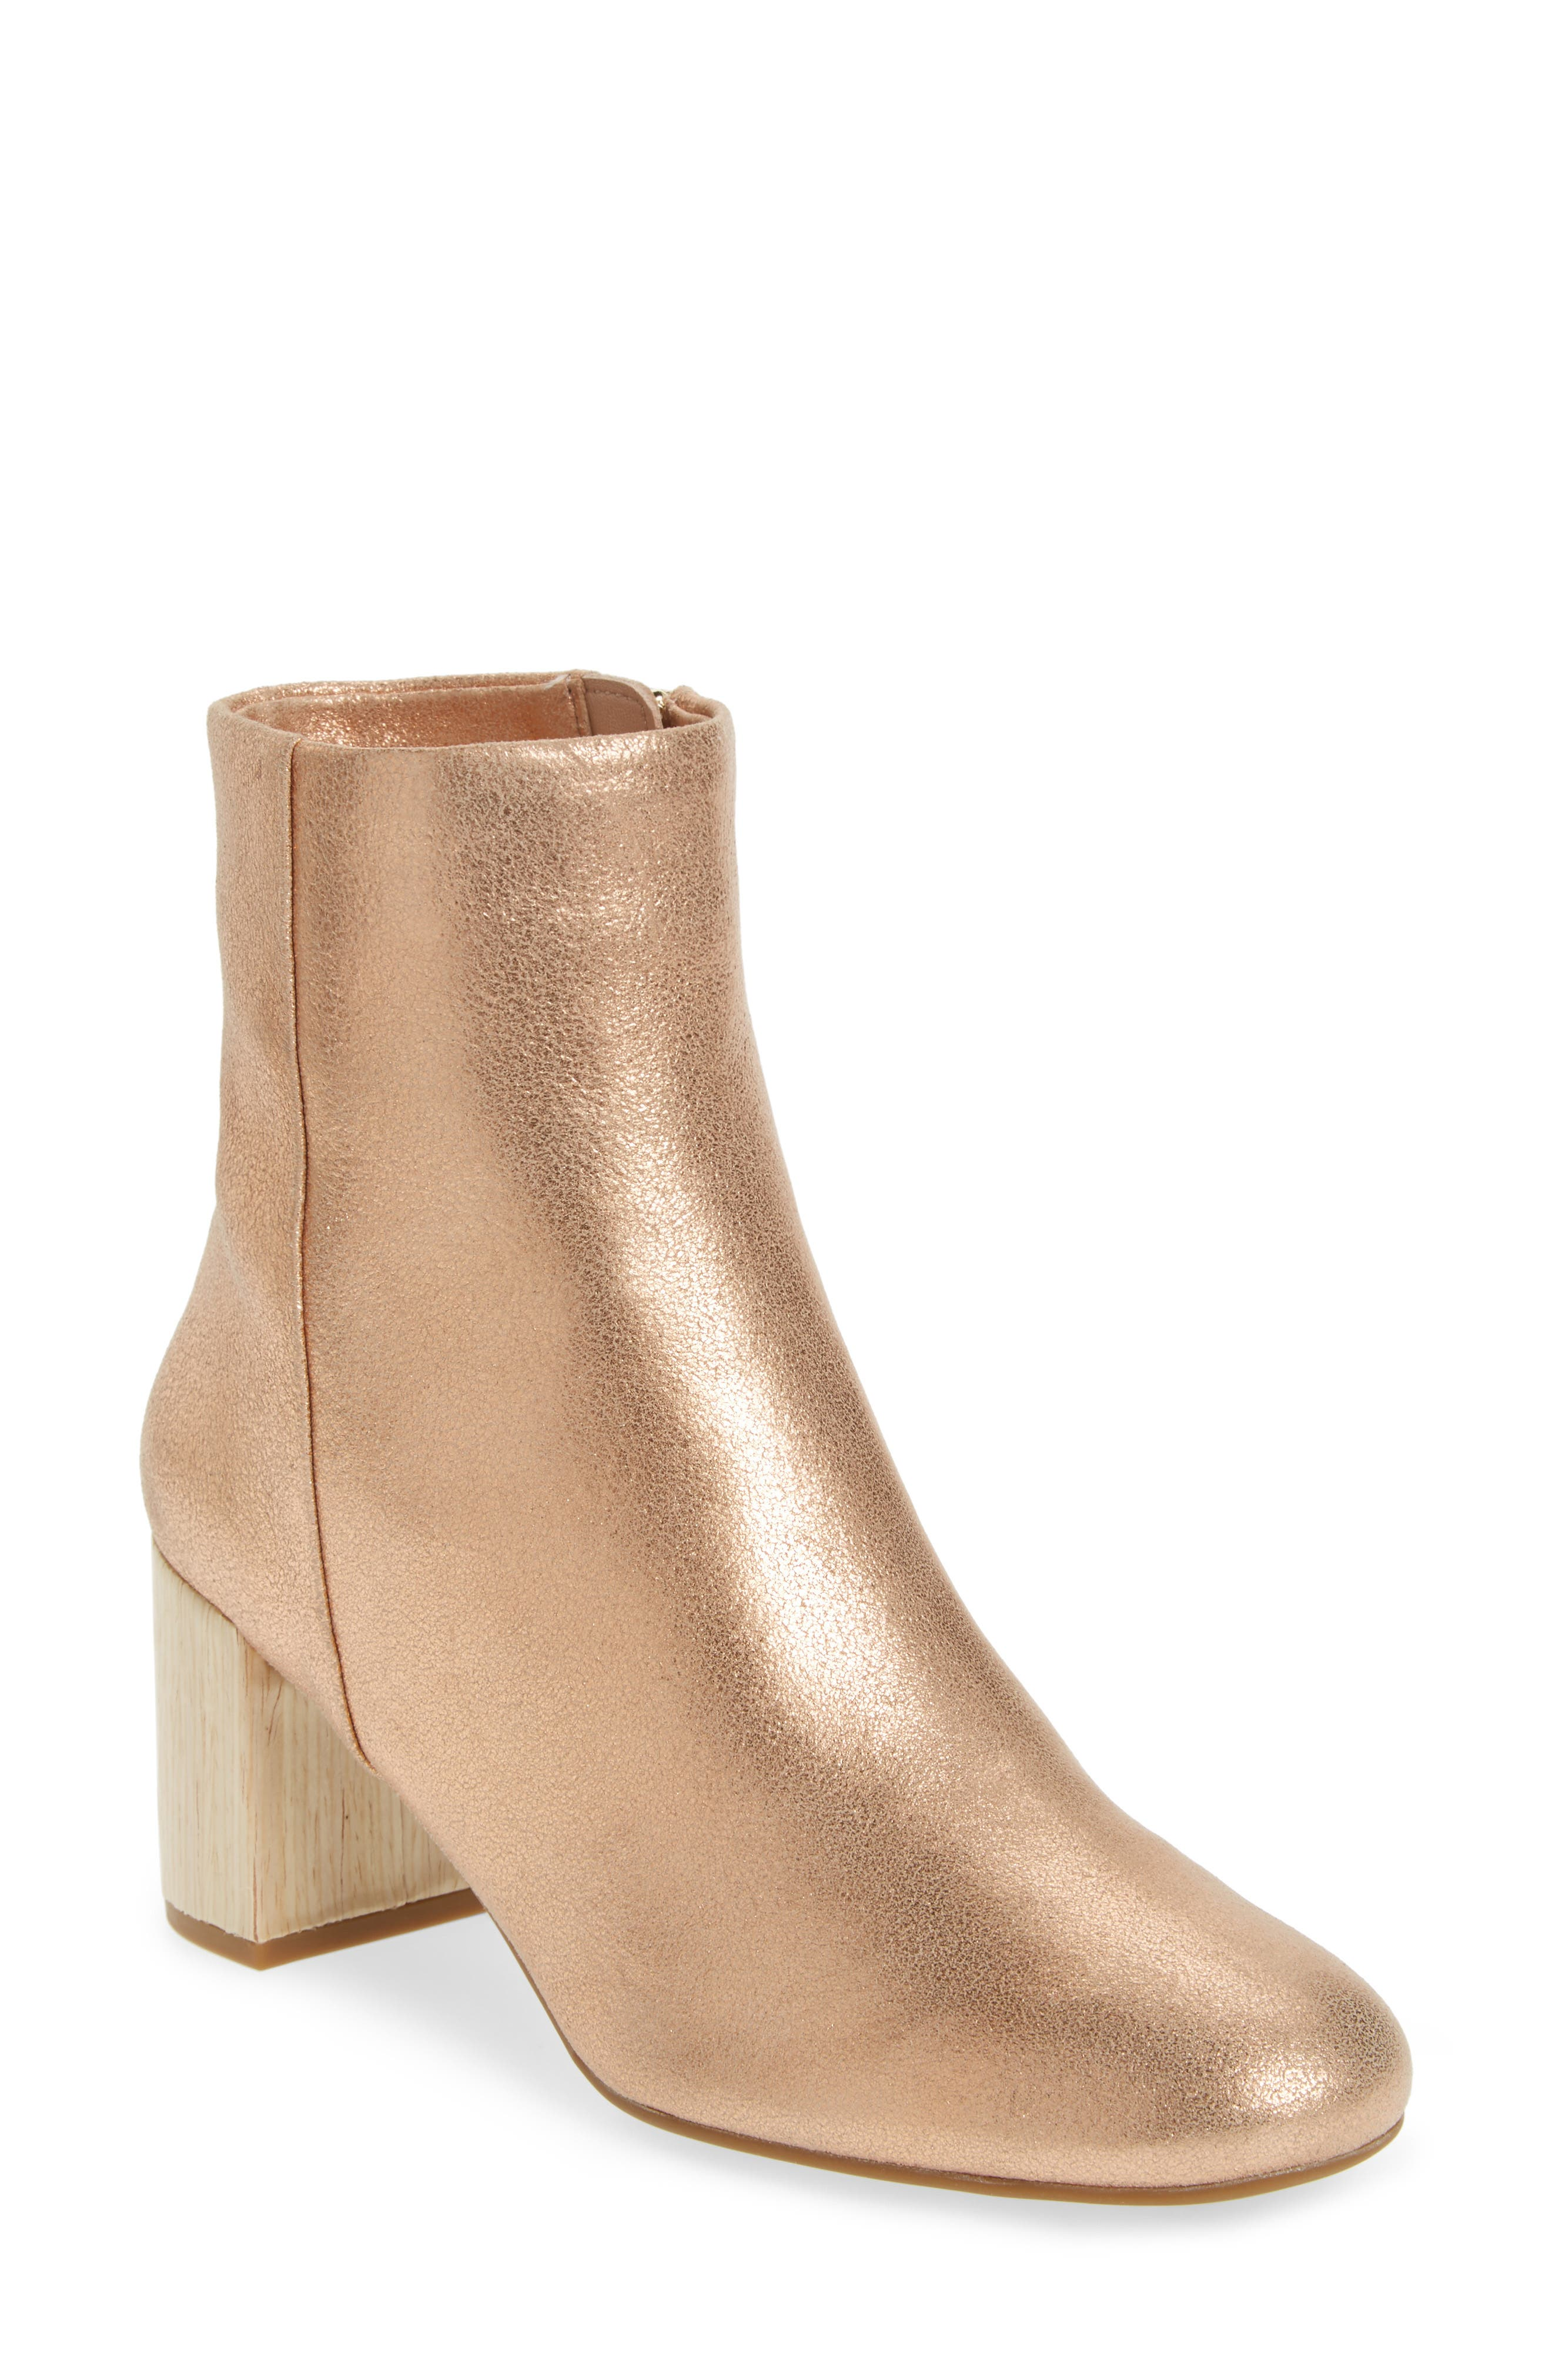 Cassidy Block Heel Bootie,                         Main,                         color, Rose Gold Leather